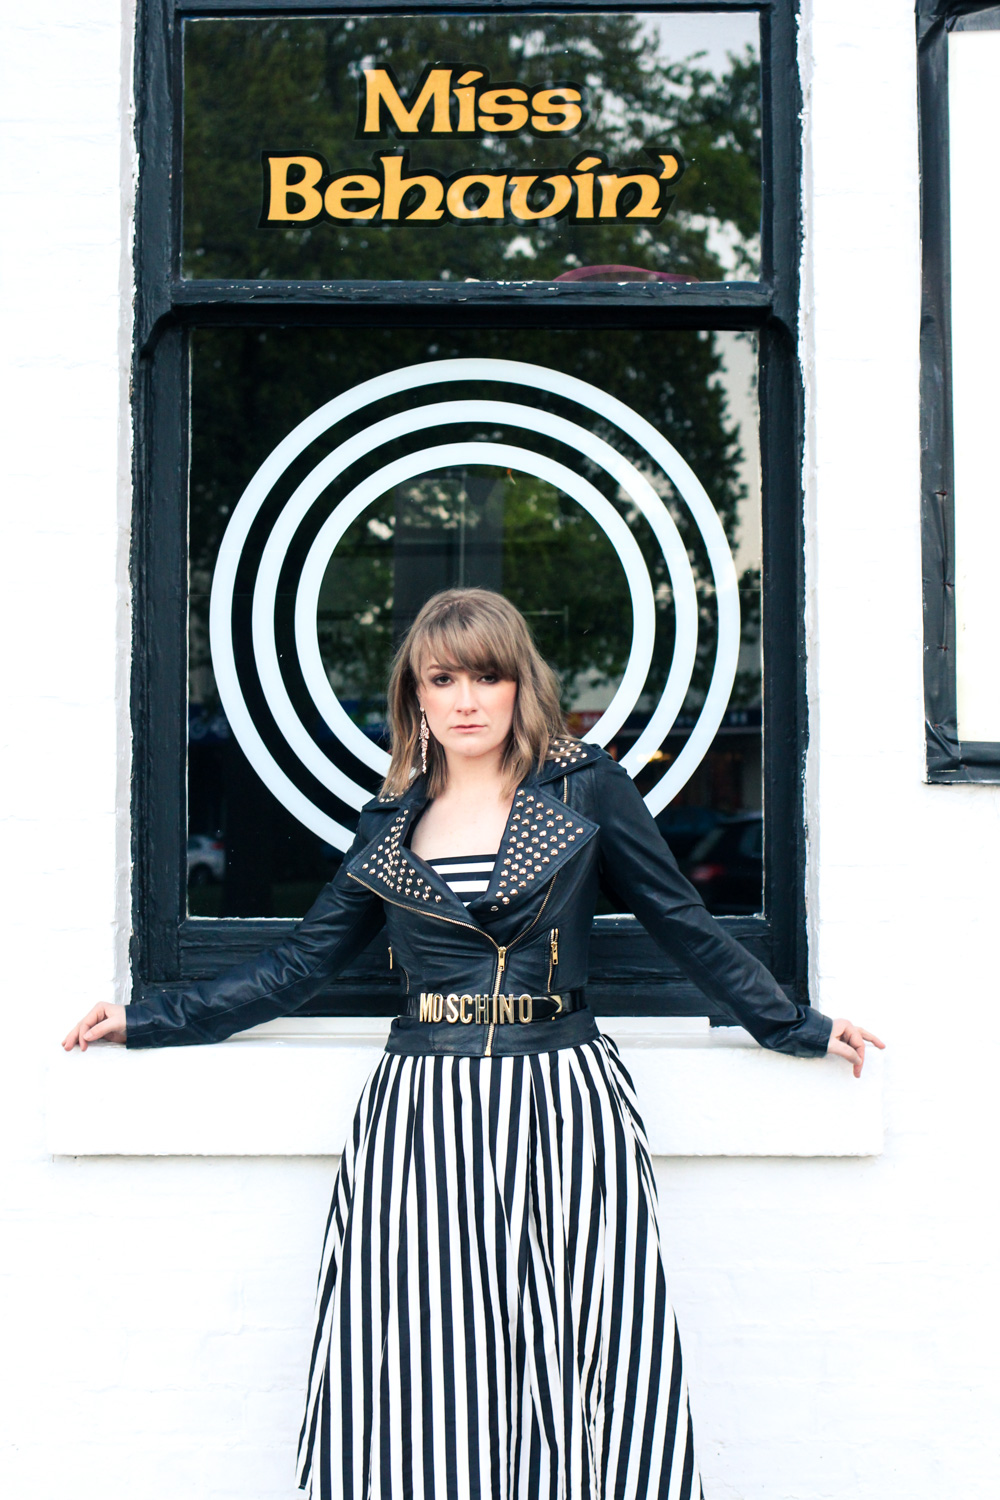 Liana of @findingfemme wears studded leather biker jacket, Moschino belt and black and white striped dress